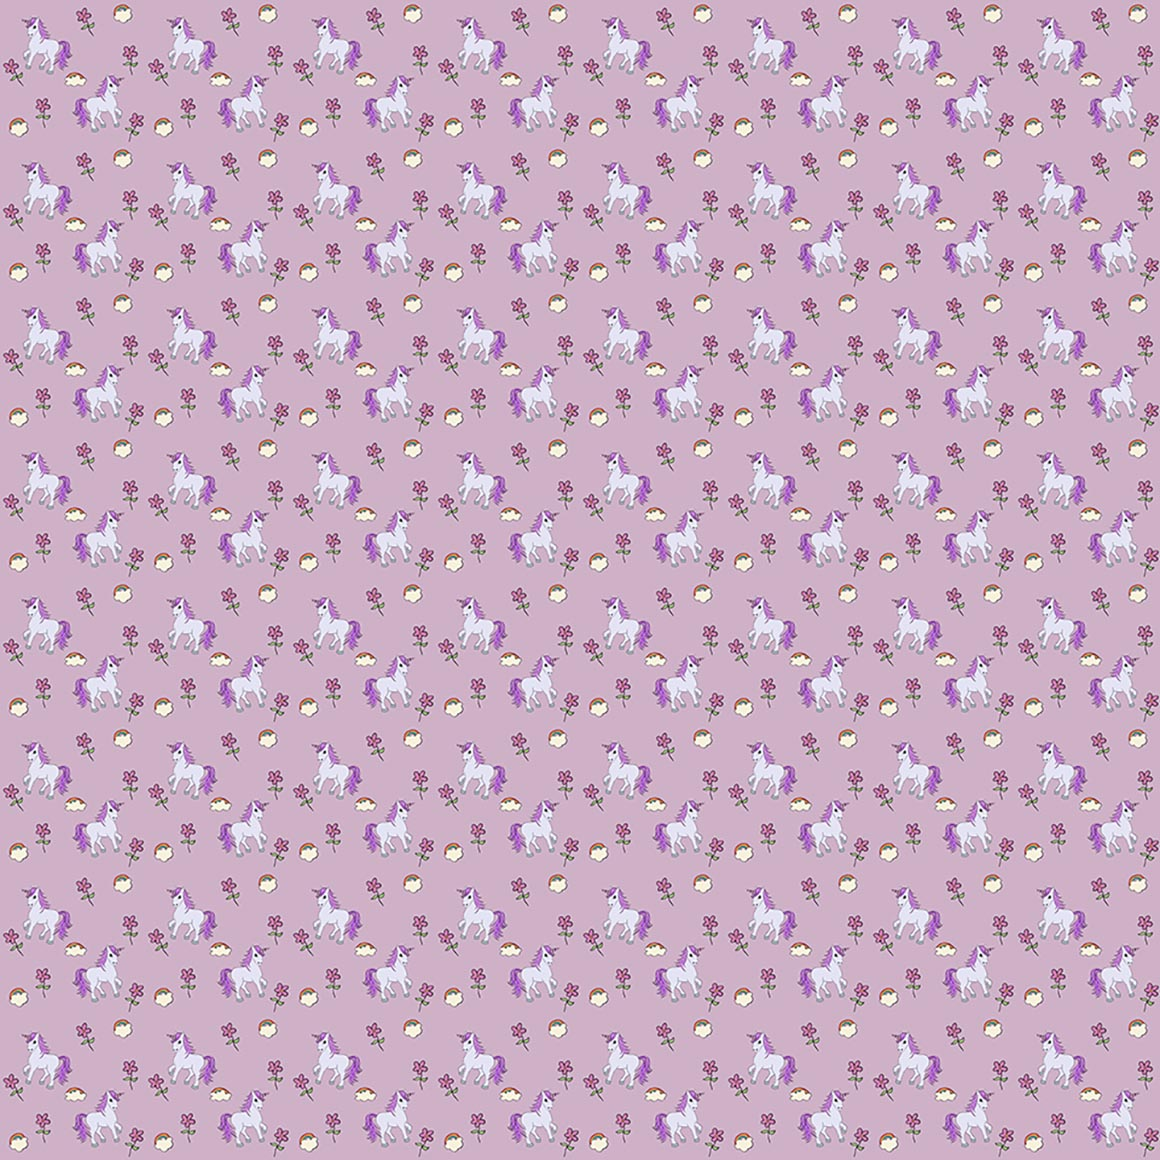 10 Unicorn Themed Seamless Patterns example image 4